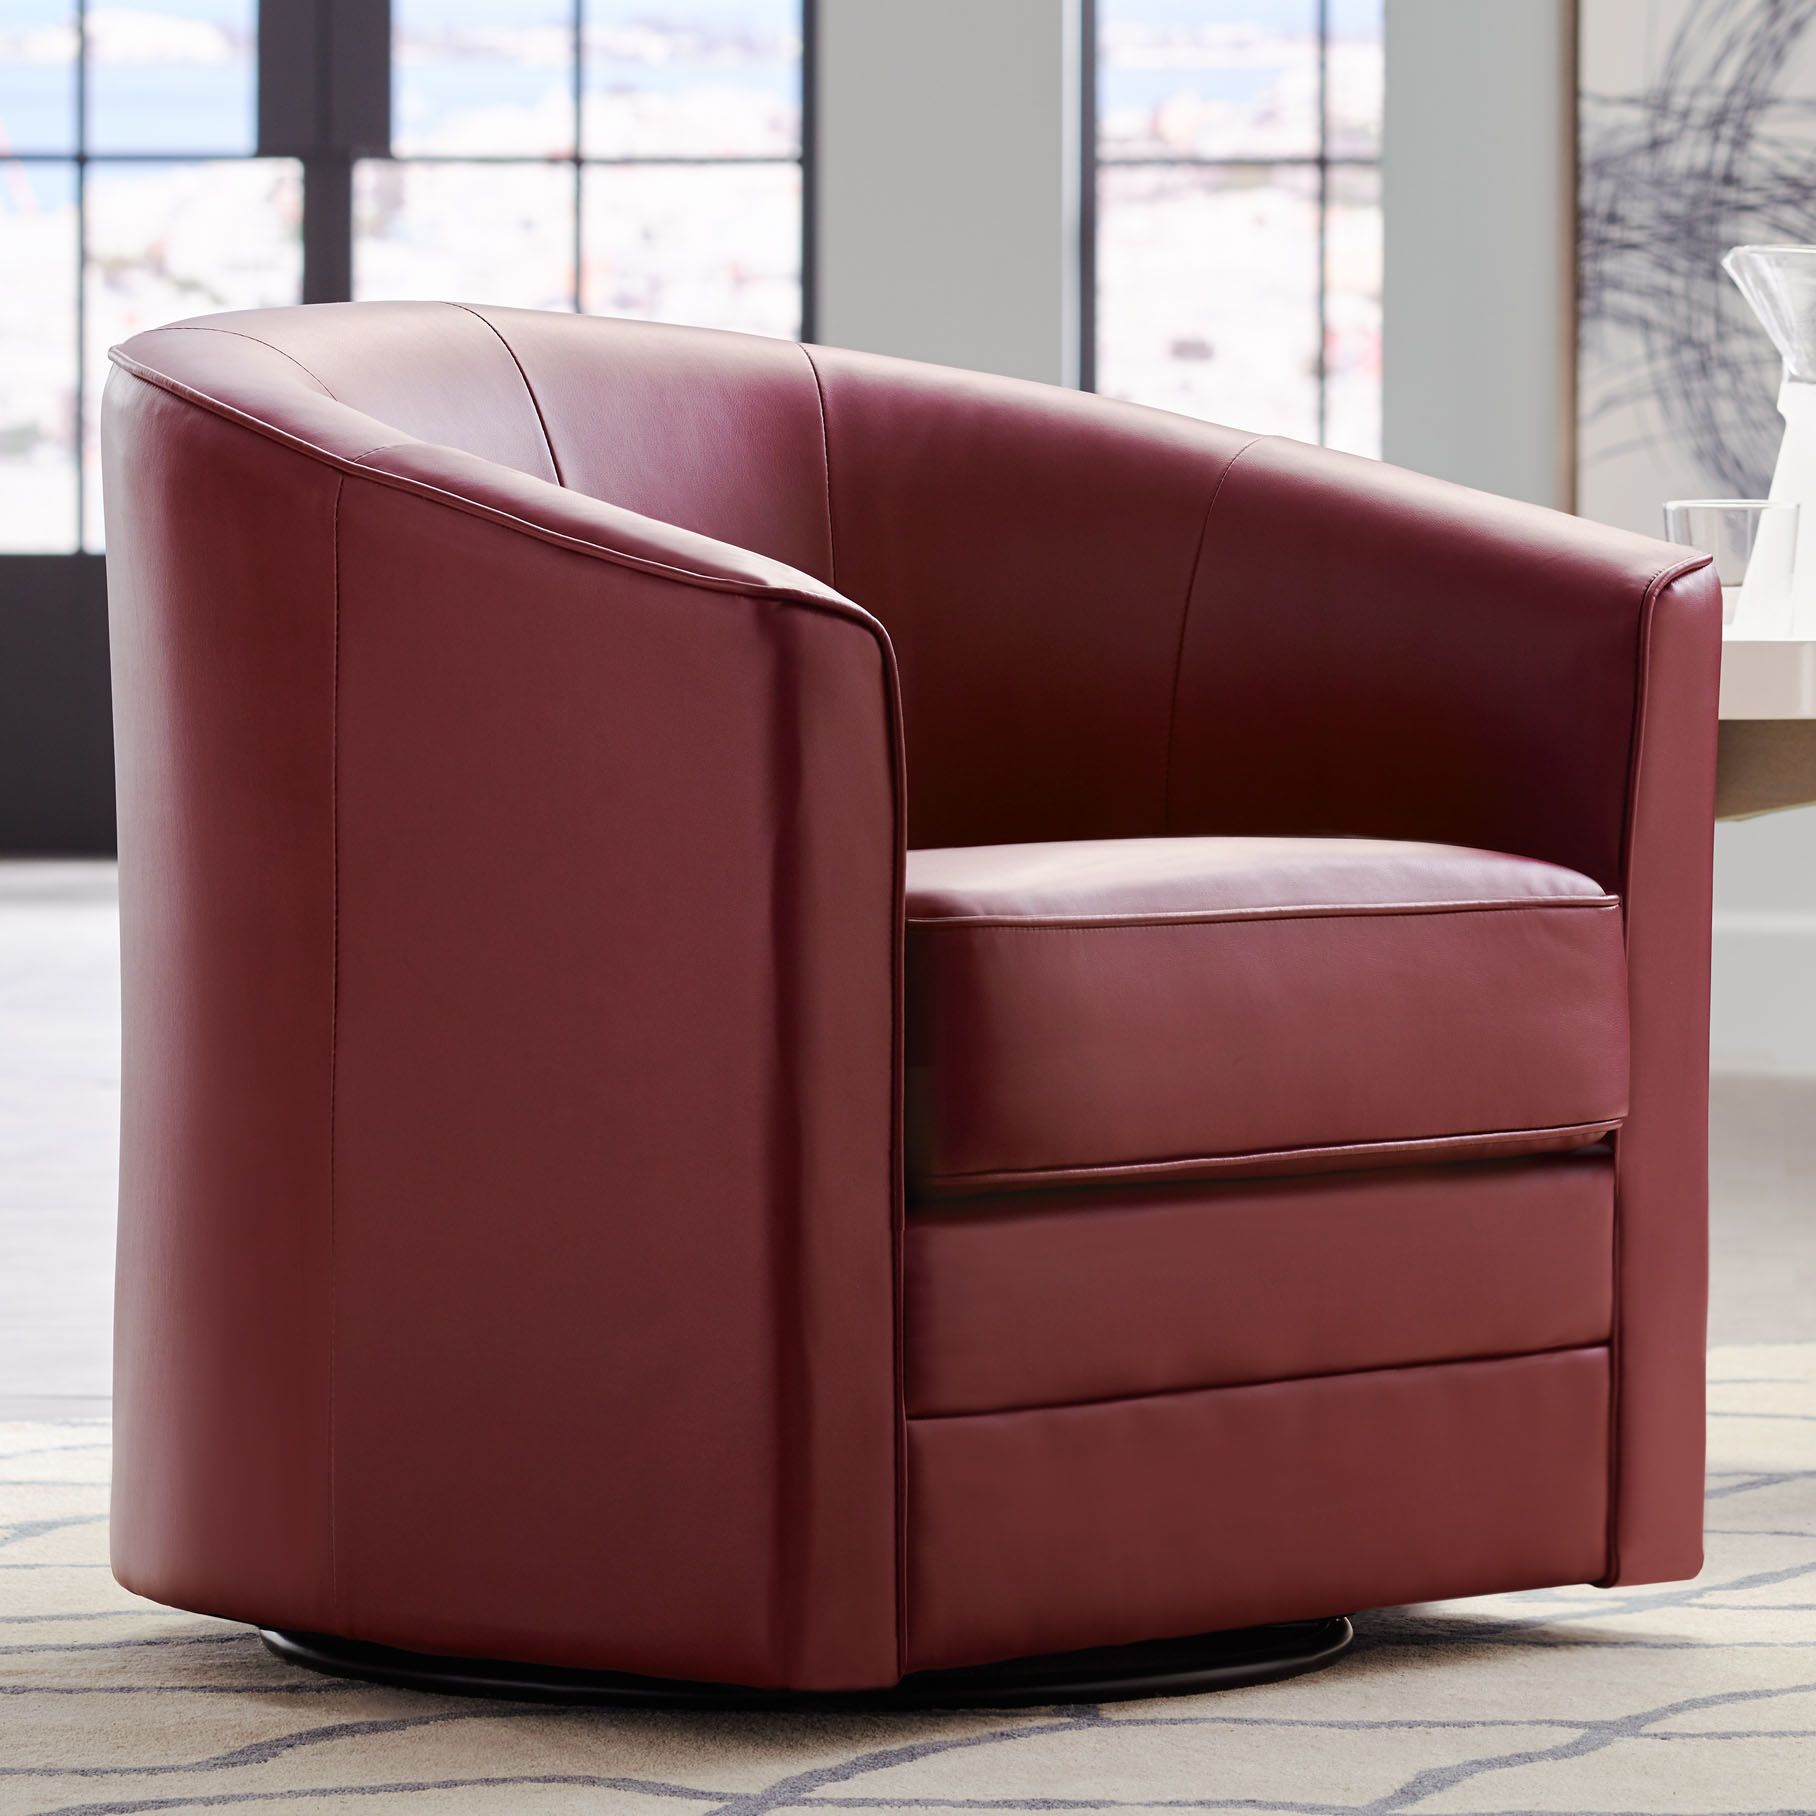 Merveilleux Keller Scarlet Red Bonded Leather Swivel Club Chair